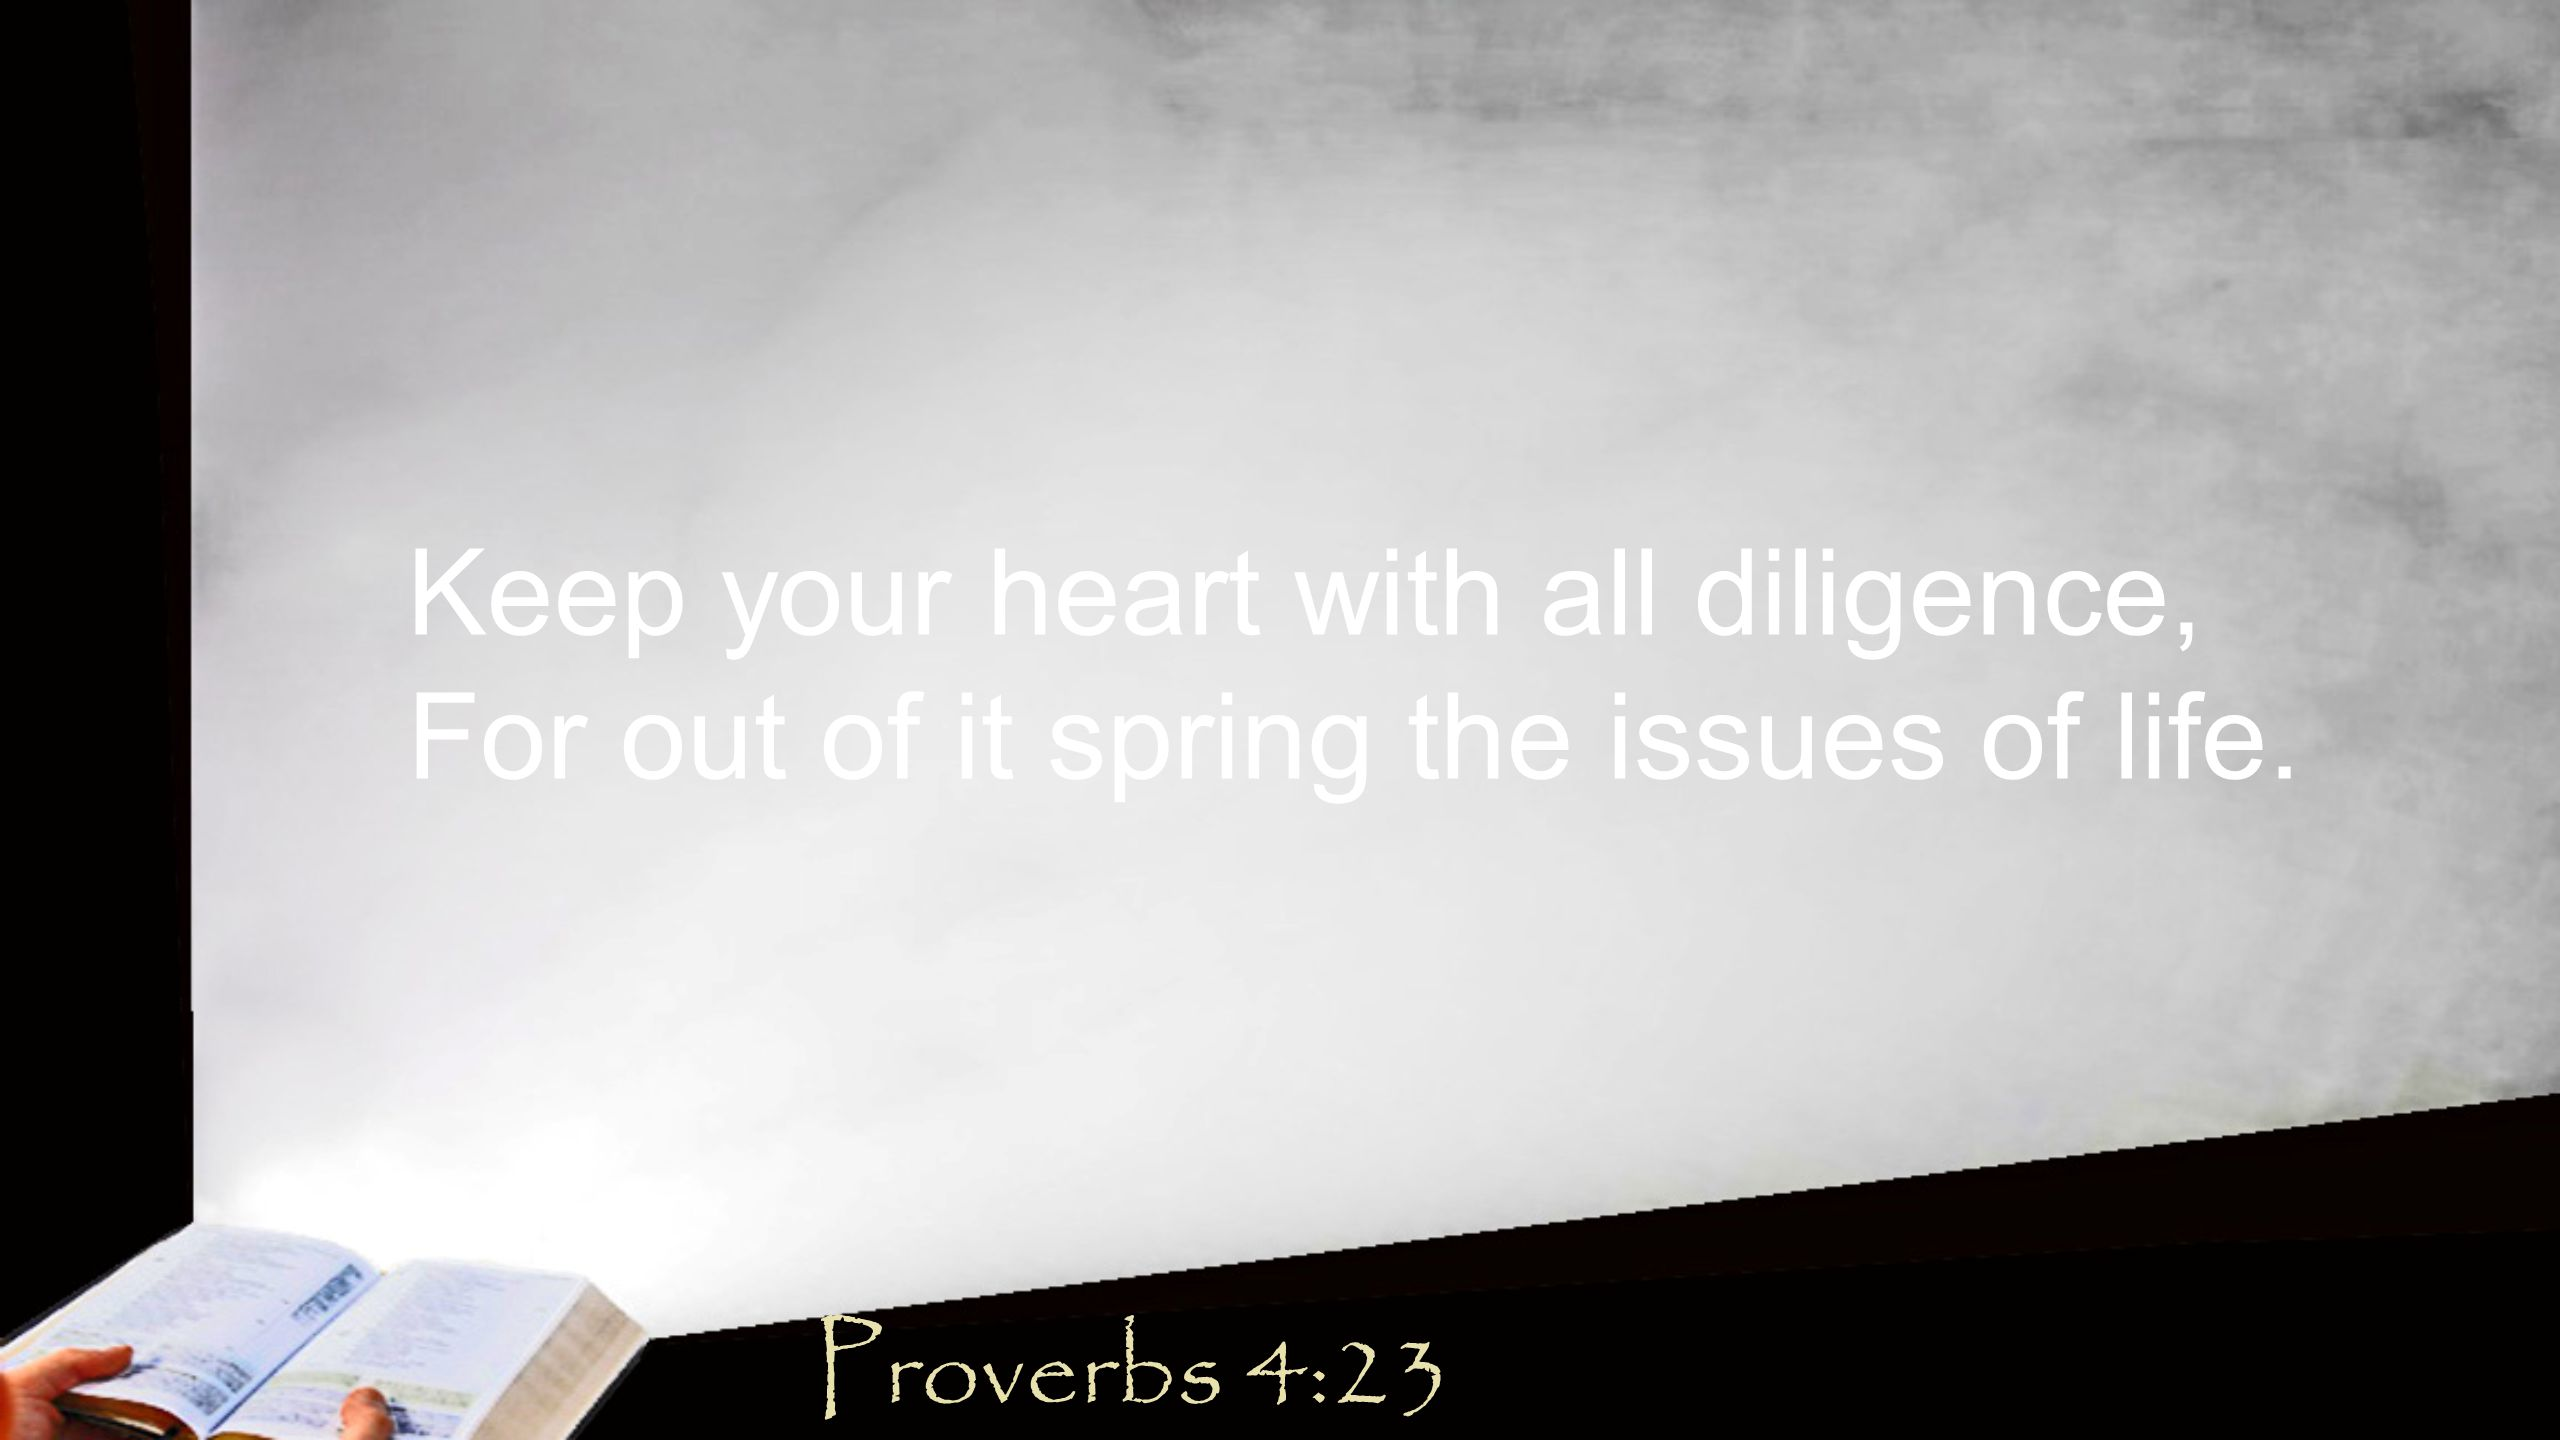 Keep your heart with all diligence, For out of it spring the issues of life. Proverbs 4:23